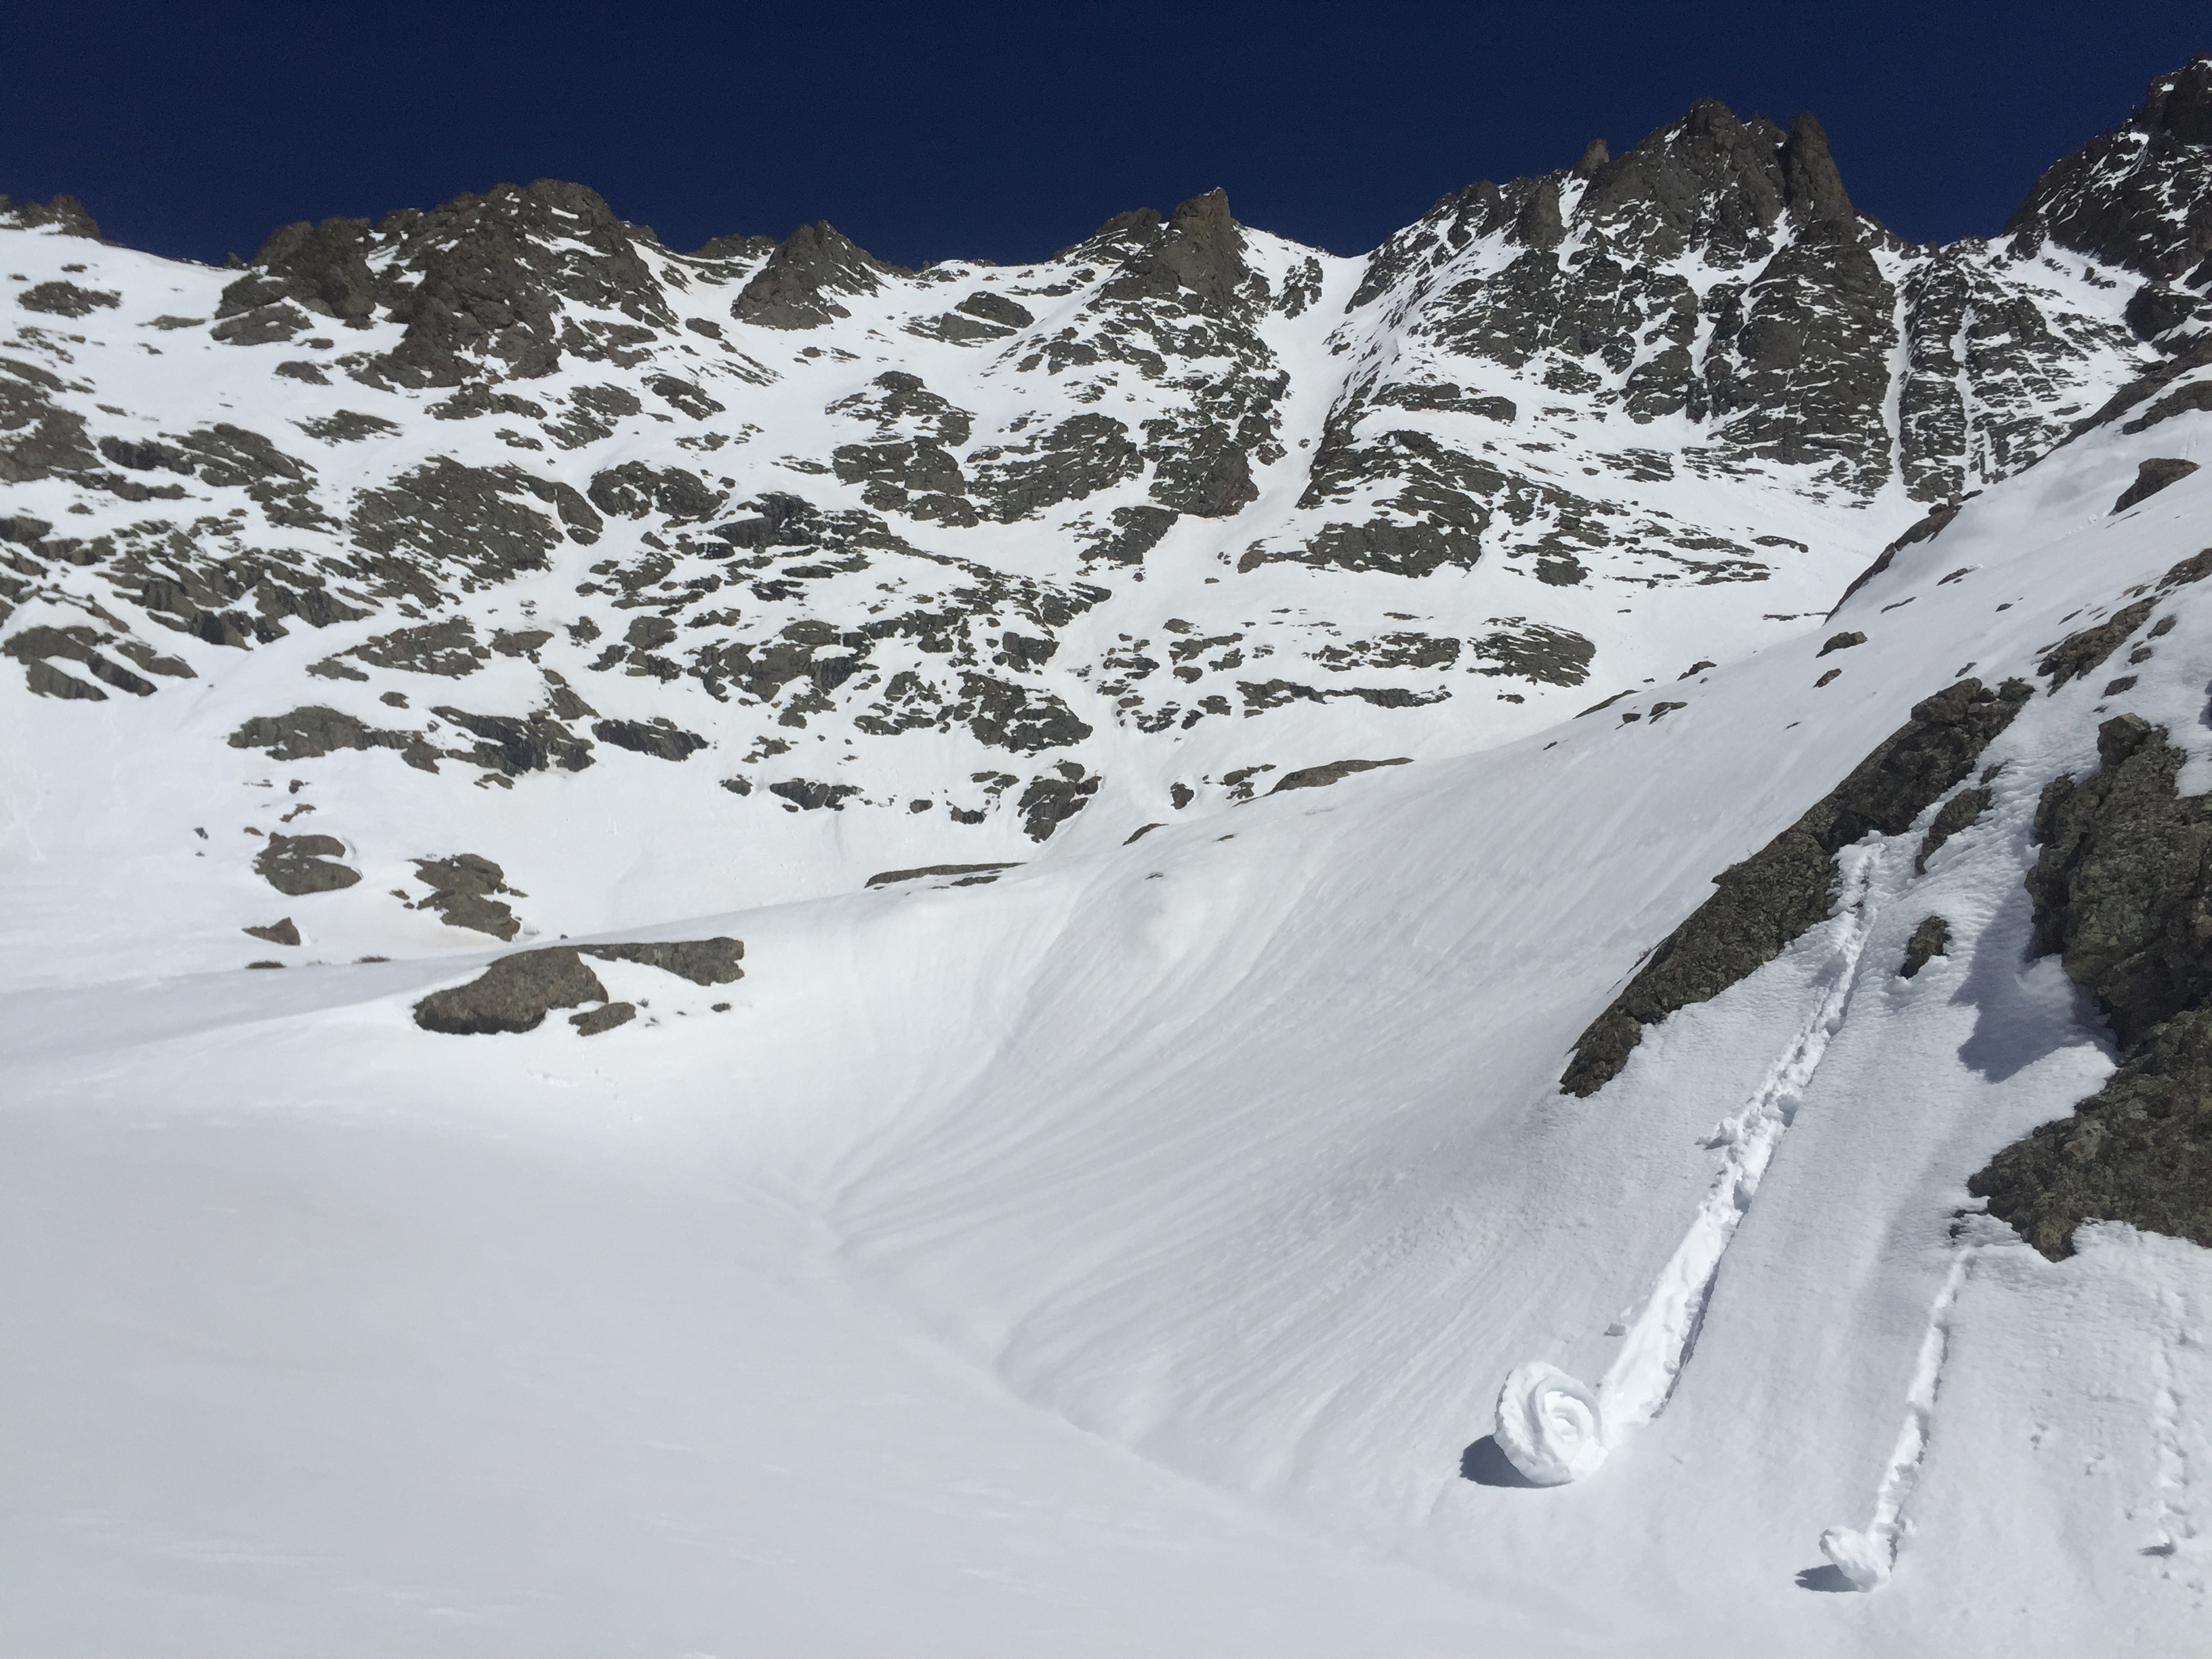 Scouting Crestone Peak- looks excellent- too warm to continue for that day, but would come back the next day!